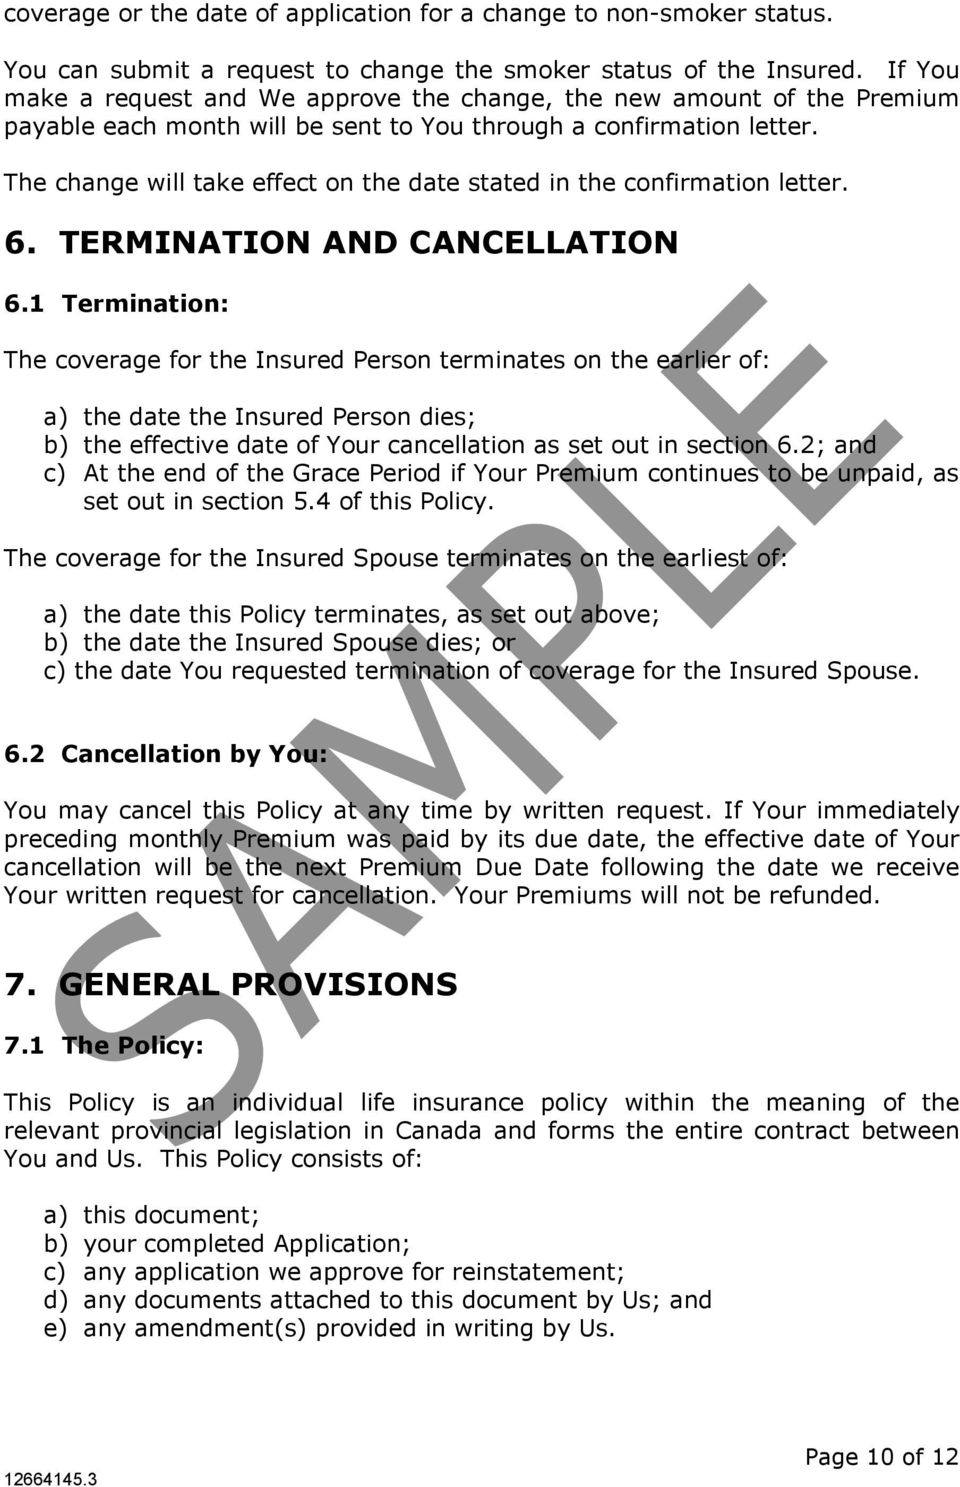 The change will take effect on the date stated in the confirmation letter. 6. TERMINATION AND CANCELLATION 6.